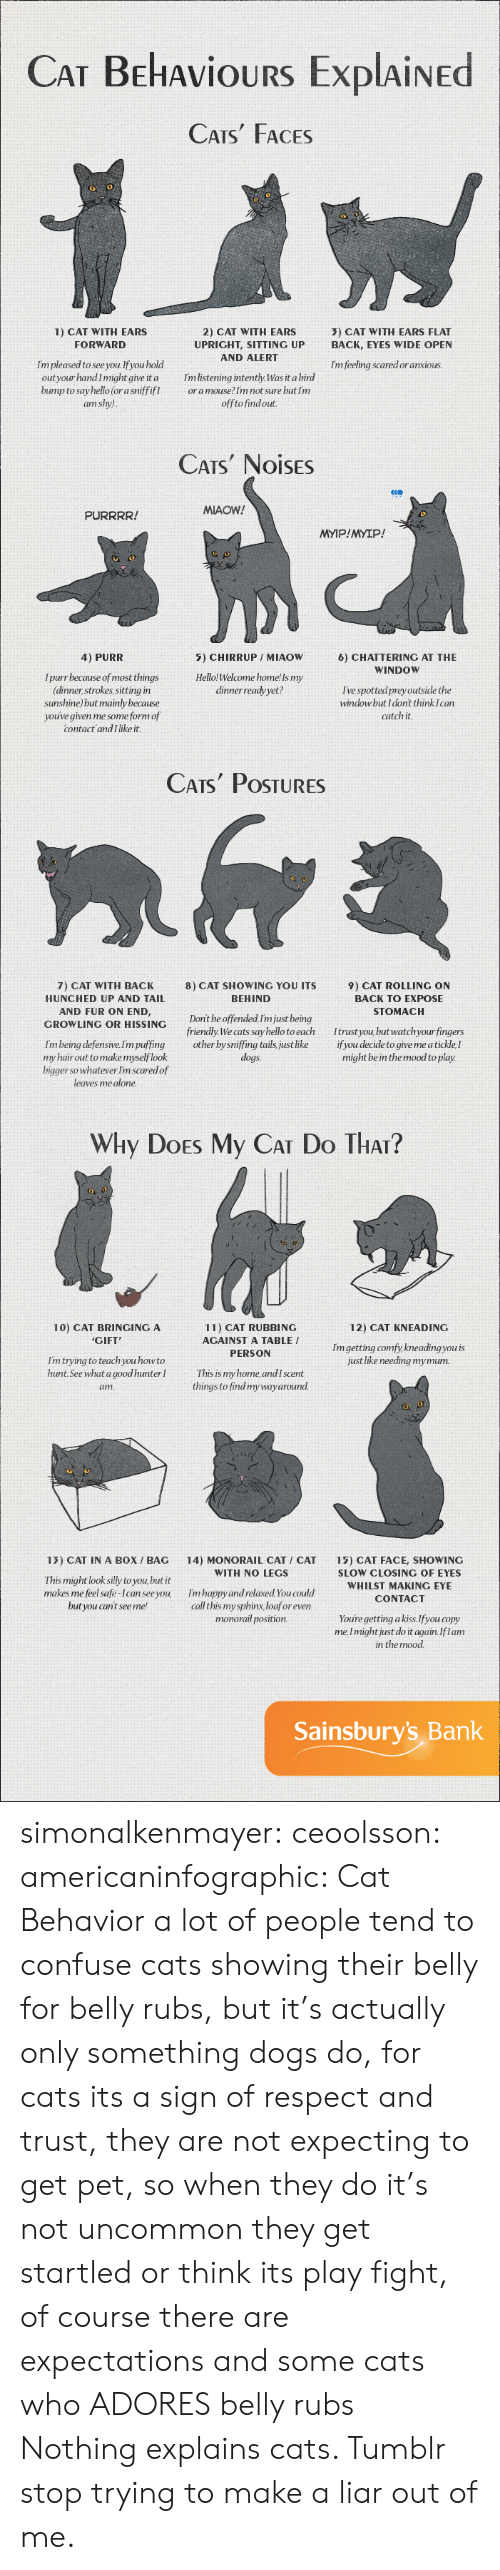 Being Alone, Cats, and Do It Again: CAT BEHAvioURS ExplAiNED  CATS FACES  2) CAT WITH EARS  UPRIGHT, SITTING UP  AND ALERT  1) CAT WITH EARS  3) CAT WITH EARS FLAT  BACK, EYES WIDE OPEN  FORWARD  Im pleased to see you.If you hold  outyour handImight give it a mlistening intently. Was it a bird  bump to say hello (or a sniffifIoramouse?Im not sure but Im  Im feeling scared or anxious  am shy)  offtofindout  CATS NOISES  MIAOW!  PURRRR!  MYIP!MYIP!  4) PURR  5) CHIRRUP /MIAOW  HellolWelcome home! Is my  dinnerready yet?  6) CHATTERING AT THE  WINDOW  I purr because of most things  (dinner strokes, sitting in  sunshine but mainly because  youúve given me some form of  I've spottedpreyoutside the  window but I dont think Ican  catch it  contact andI like it.   CATs PoSTURES  7) CAT WITH BACK  HUNCHED UP AND TAIL  AND FUR ON END,  8) CAT SHOWING YOU ITS  BEHIND  9) CAT ROLLING ON  BACK TO EXPOSE  STOMACH  GROWLING OR HISSINC Dont be offended Im just being  friendly We cats say hello toeach Itrust you but watchyour fingers  Im being defensive.lim puffing other by sniffing tails, just like ifyou decide to give me a tickle,I  dogs.  my hair out to make myselflook  bigger so whatever Im scaredof  leaves me alone.  might be in the mood to play.   Why DoEs My CAT Do THAr?  10) CAT BRINGING A  CIFT  12) CAT KNEADING  11) CAT RUBBING  AGAINST A TABLE /  PERSON  Imgetting comfy, kneading you is  just like needing mymum.  Im trying to teach you howto  hunt.See what a goodhunter  am.  This is my home andIscent  things to find mywayaround.  13) CAT IN A BoX / BAG 14) MONORAIL CAT CAT 15) CAT FACE, SHOWING  WITH NO LEGS  This might look silly to you, but it  makes me feel safe-Ican seeyou  but you cant seeme!  SLOW CLOSING OF EYES  WHILST MAKING EYE  CONTACT  Im happy and relaxed You could  call this mysphinx loaforeven  monorail position.  Youre getting akiss.Ifyou copy  me, Imightjust do it again.Iflam  in the mood  Sainsbury's Bank simonalkenmayer:  ceoolsson:  americaninfographic:  Cat Behavior   a lot of people tend to confuse cats showing their belly for belly rubs, but it's actually only something dogs do, for cats its a sign of respect and trust, they are not expecting to get pet, so when they do it's not uncommon they get startled or think its play fight, of course there are expectations and some cats who ADORES belly rubs  Nothing explains cats. Tumblr stop trying to make a liar out of me.